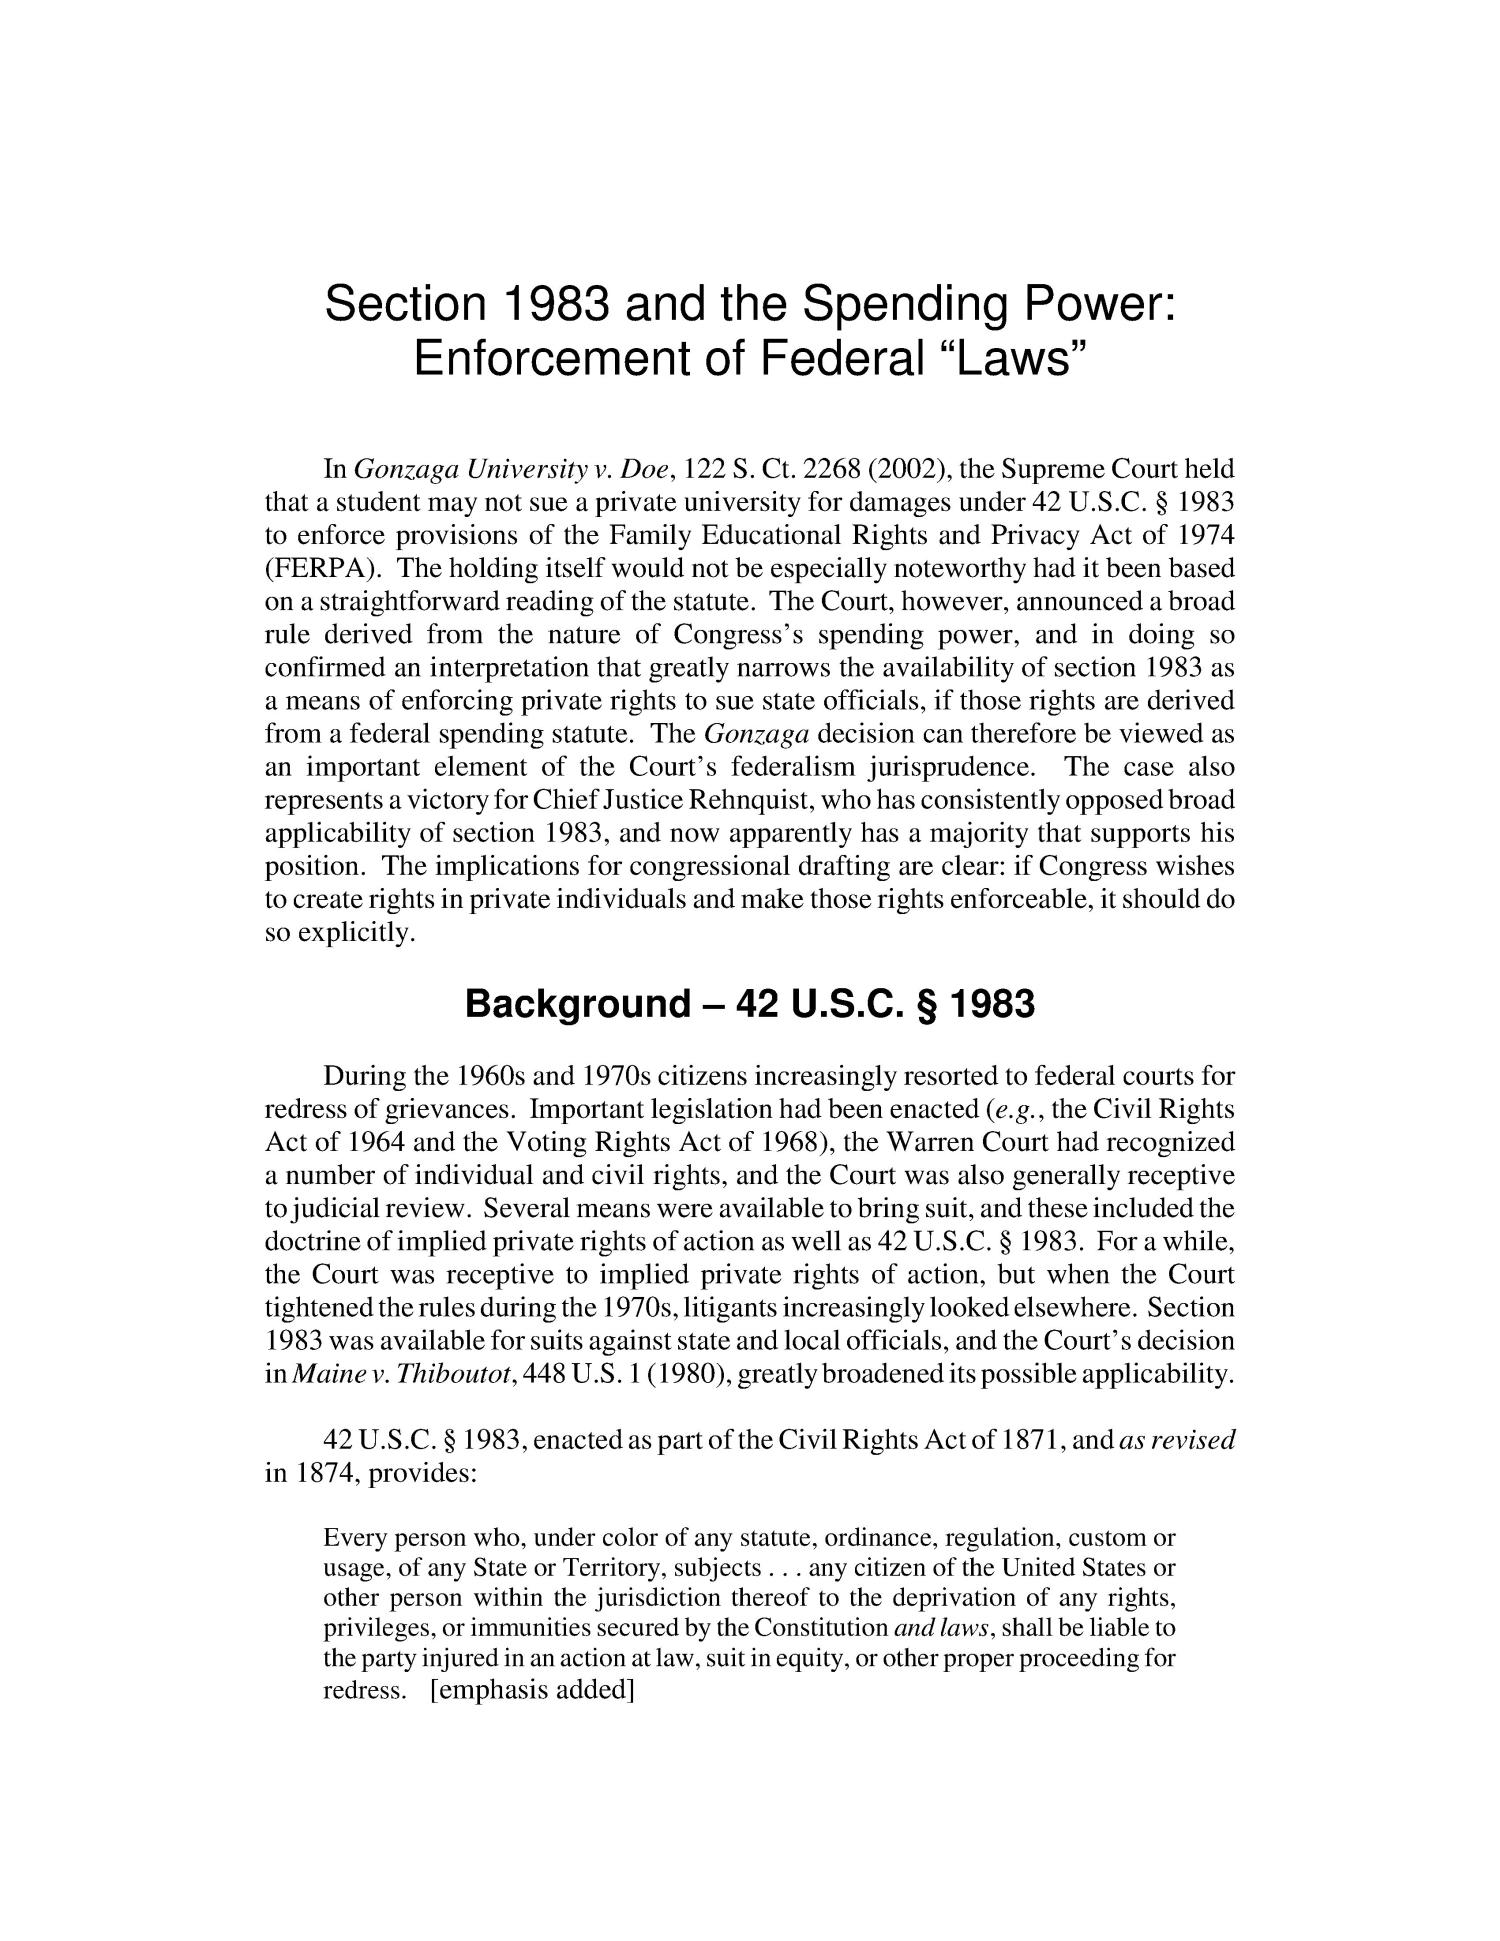 "Section 1983 and the Spending Power: Enforcement of Federal ""Laws""                                                                                                      [Sequence #]: 4 of 13"